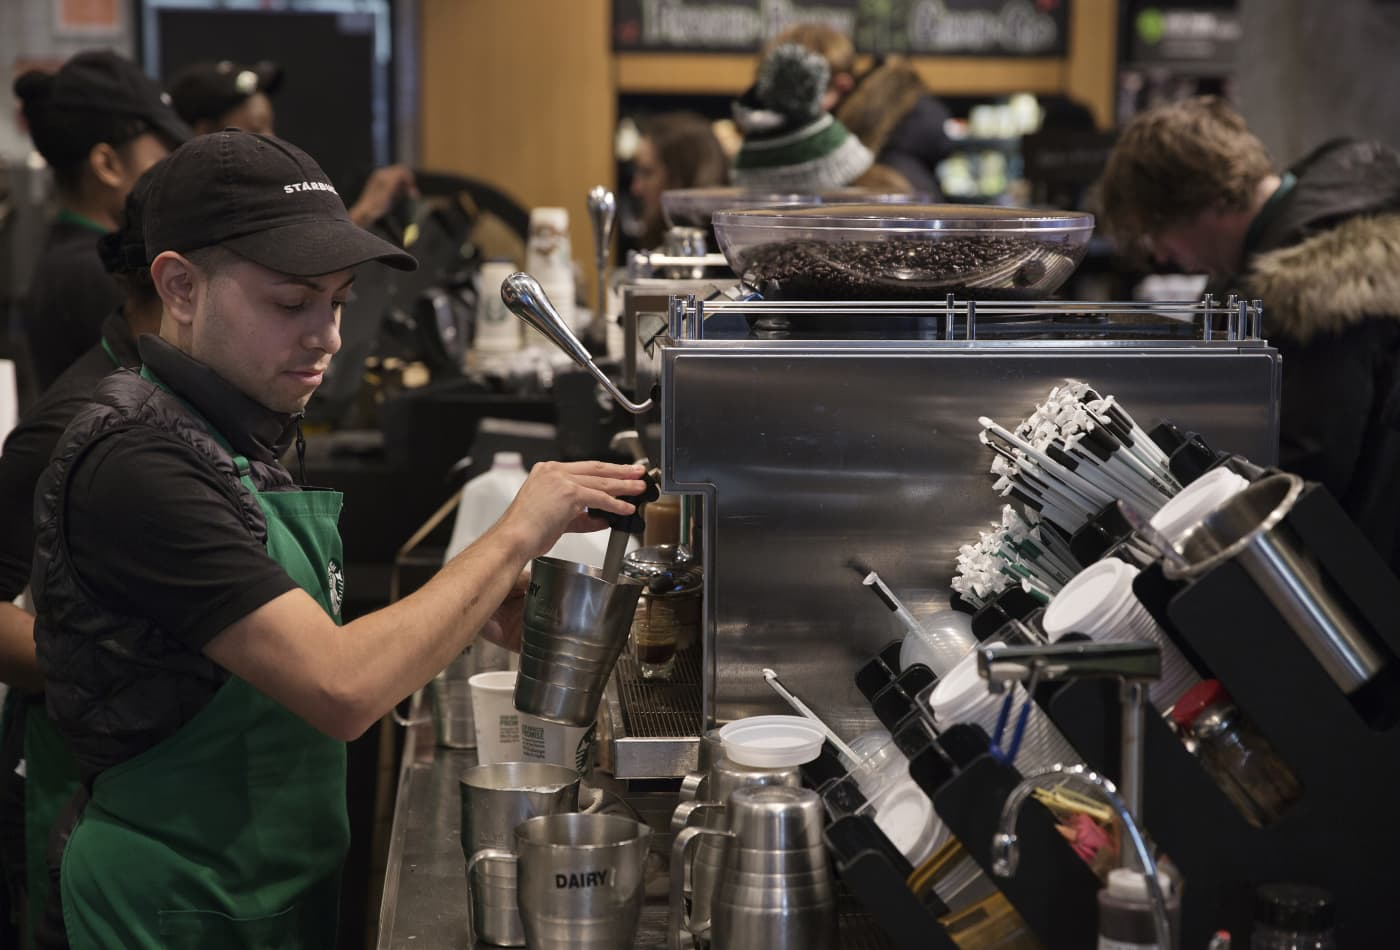 Starbucks and other companies that have reached pay equity